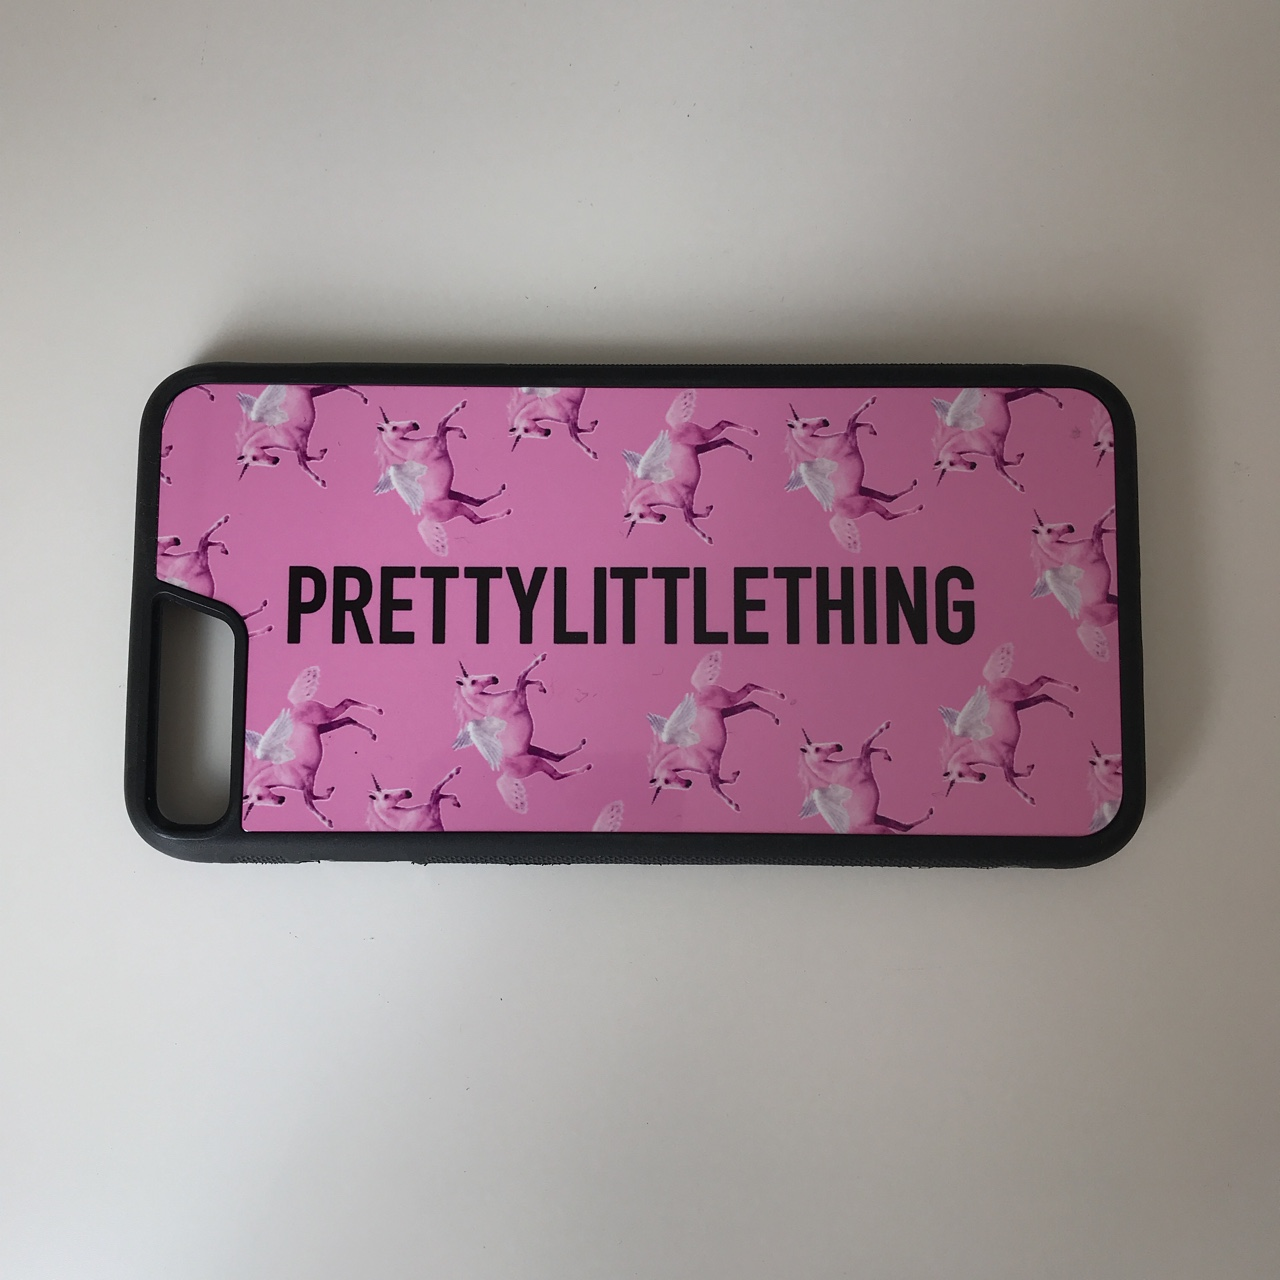 new products 64996 9c06b Pretty little thing phone case brand new for iphone... - Depop